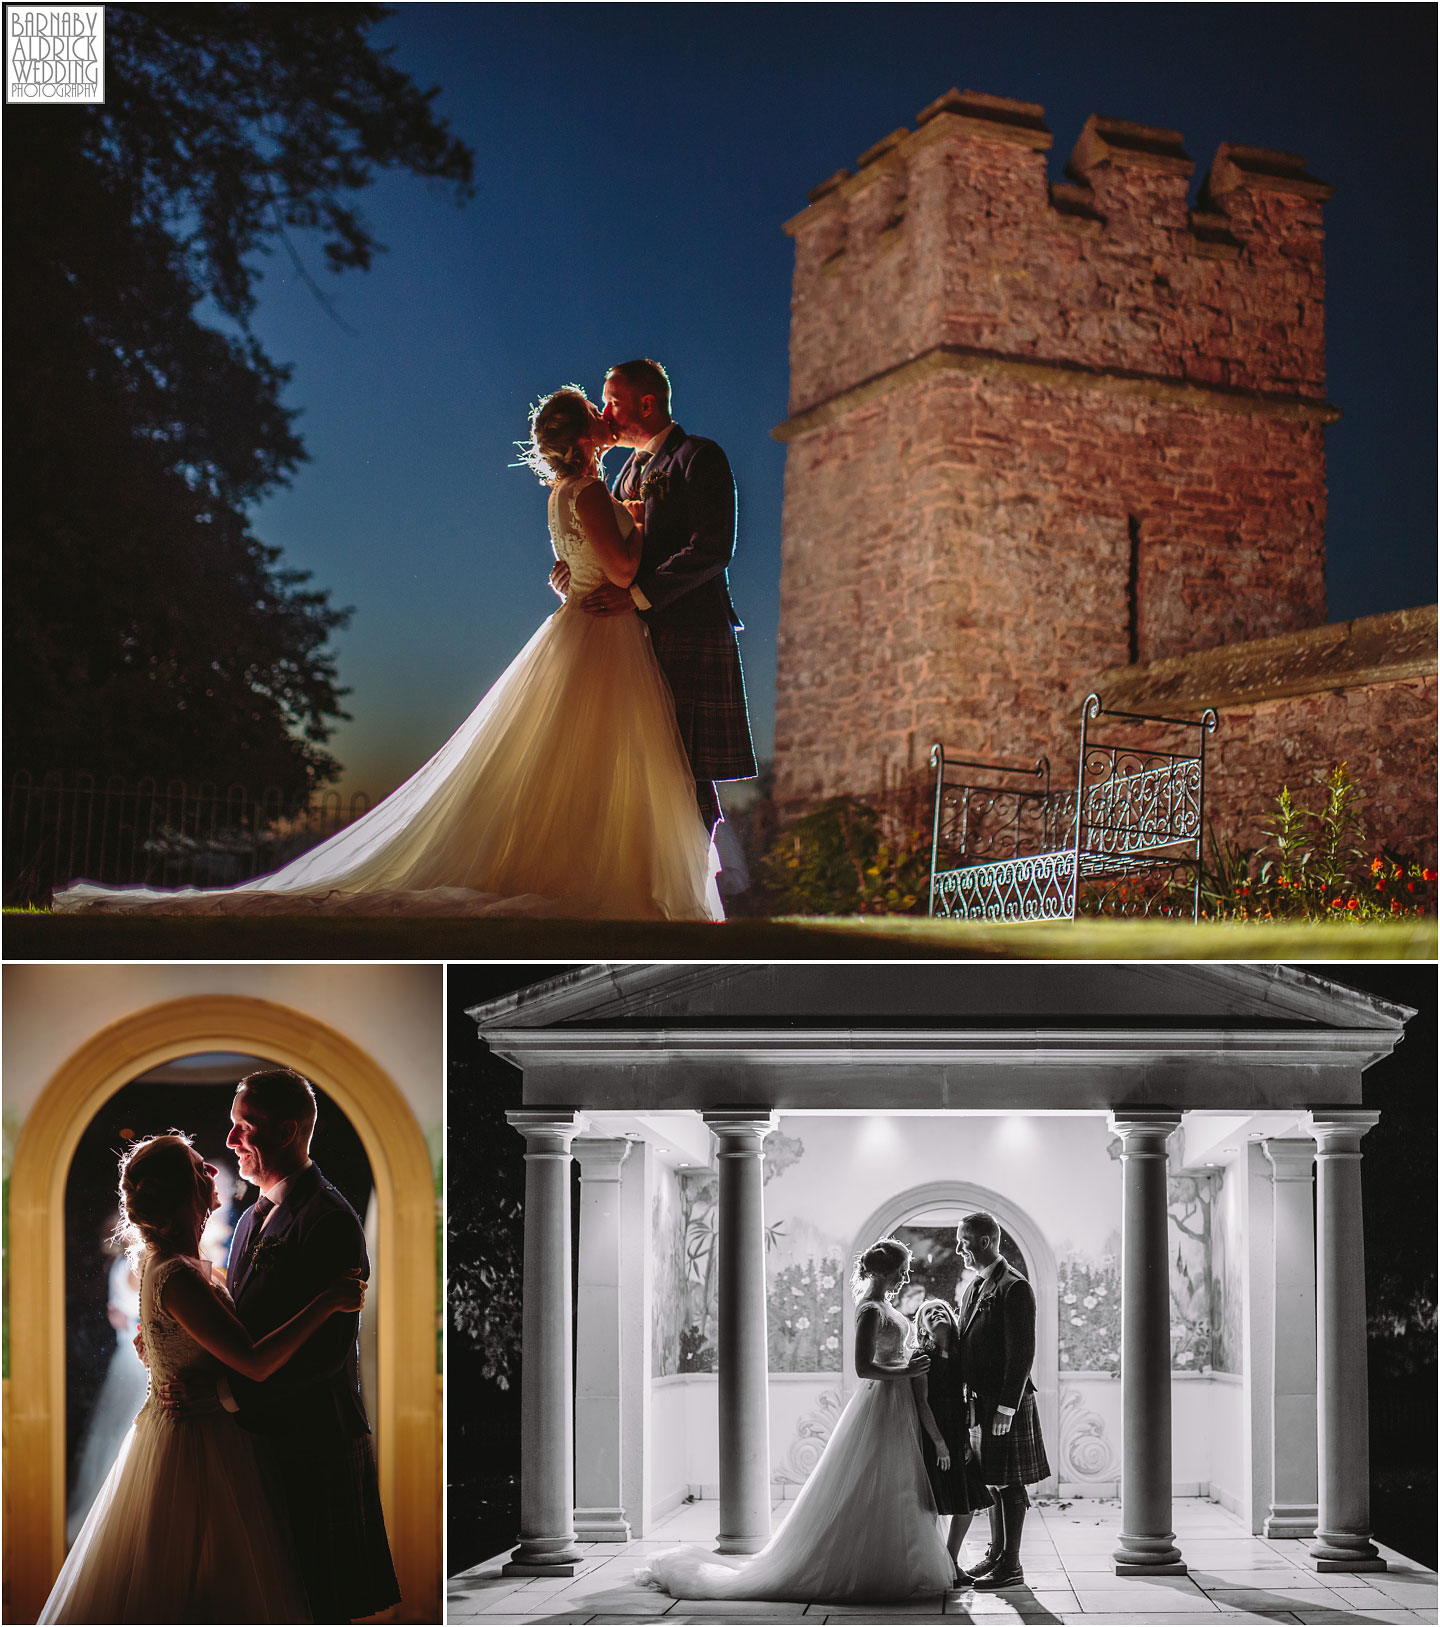 Evening wedding couple portraits at Rowton Caste, Shropshire Wedding Photographer, Shrewsbury wedding venue, Amazing UK Castle Wedding